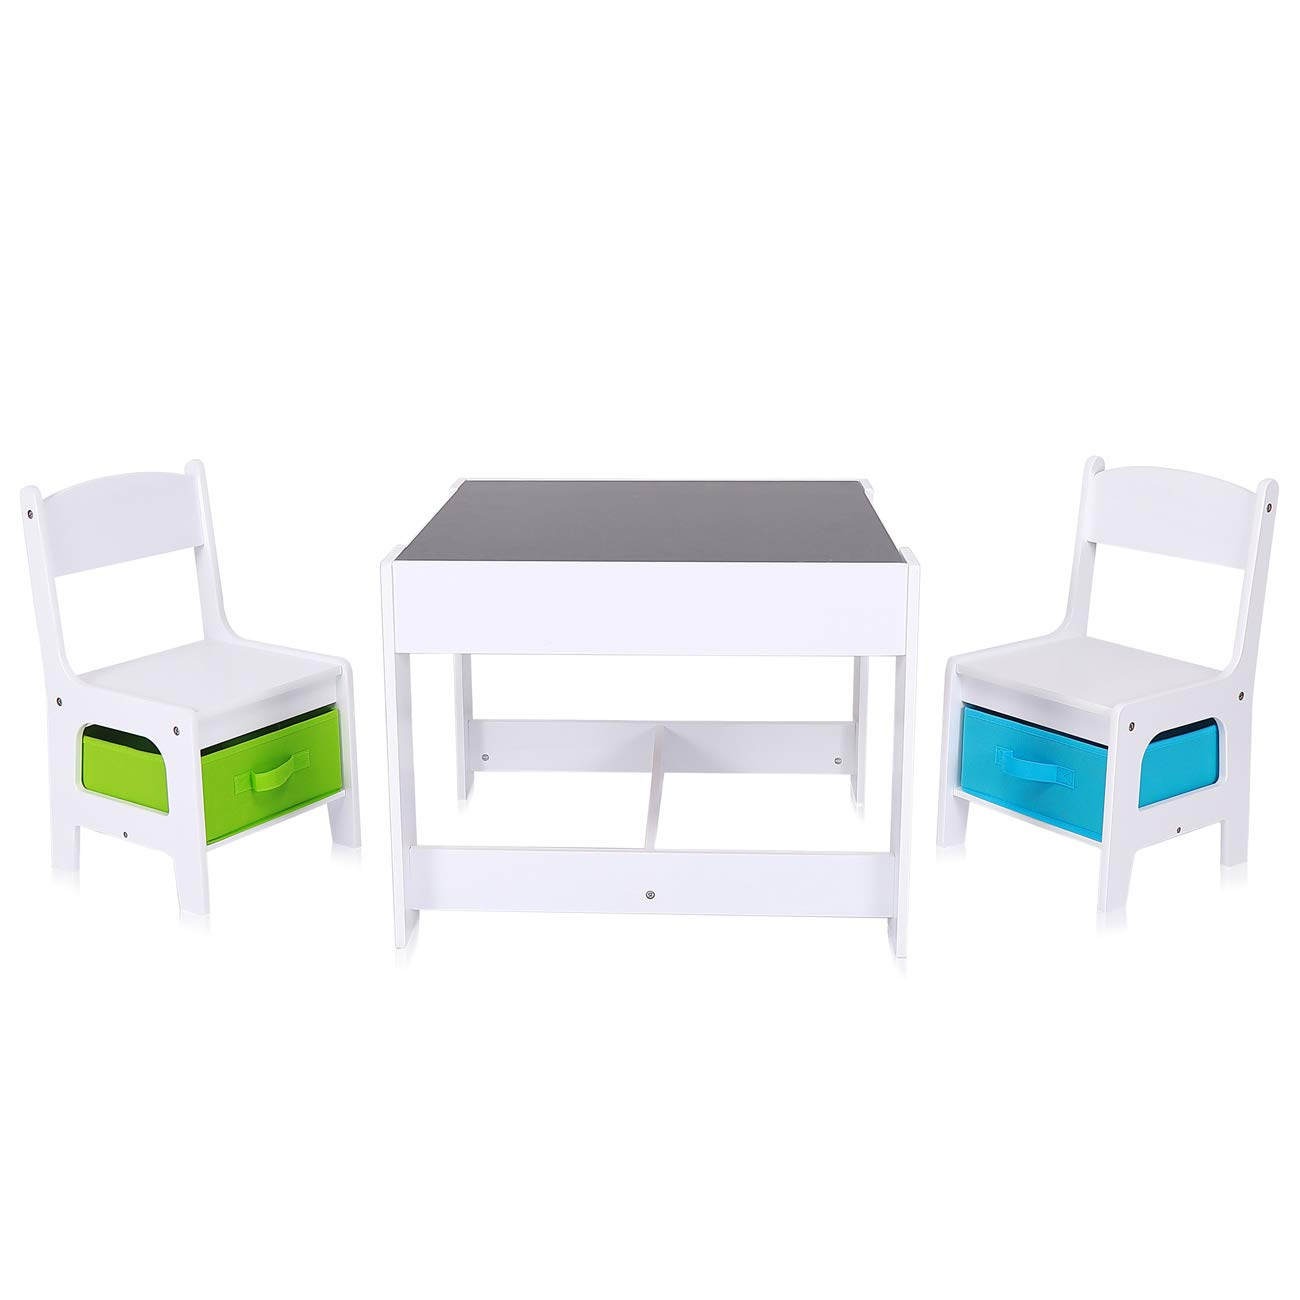 Baby Vivo Set Children's Activity Table with 2 Chairs Furniture Set Boys and Girls made of Wood - Max